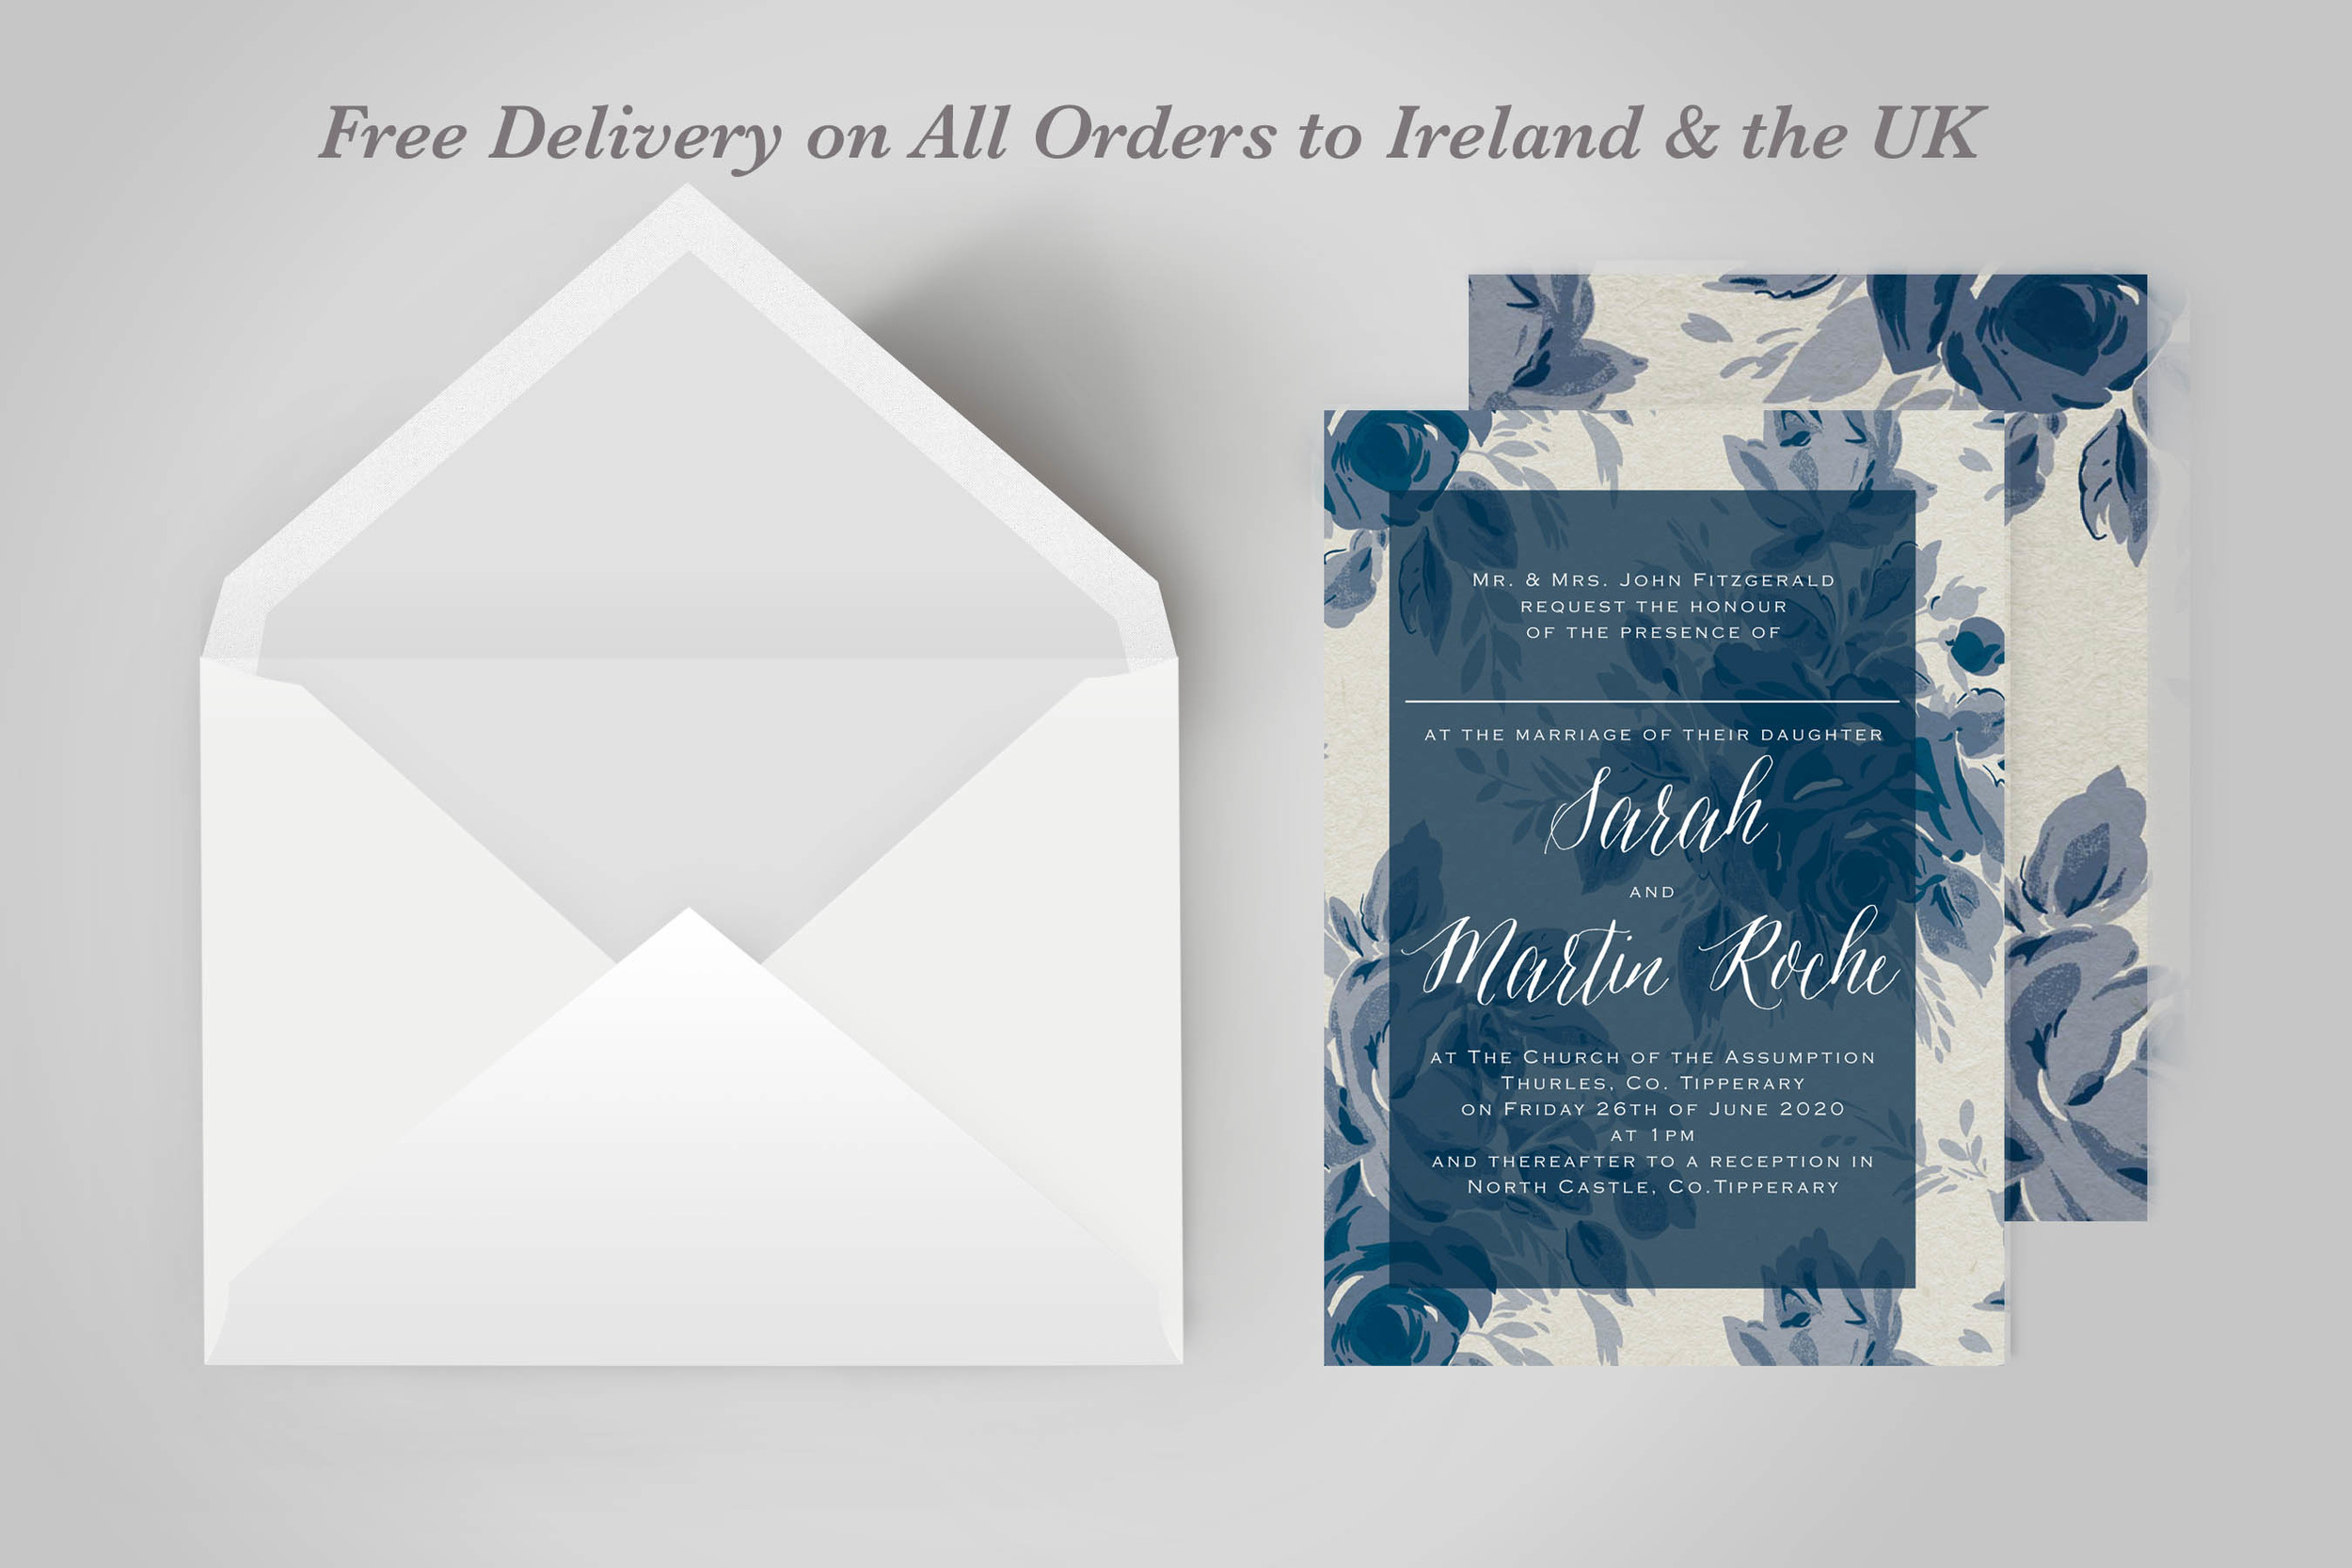 Free Delivery Mock Up.jpg